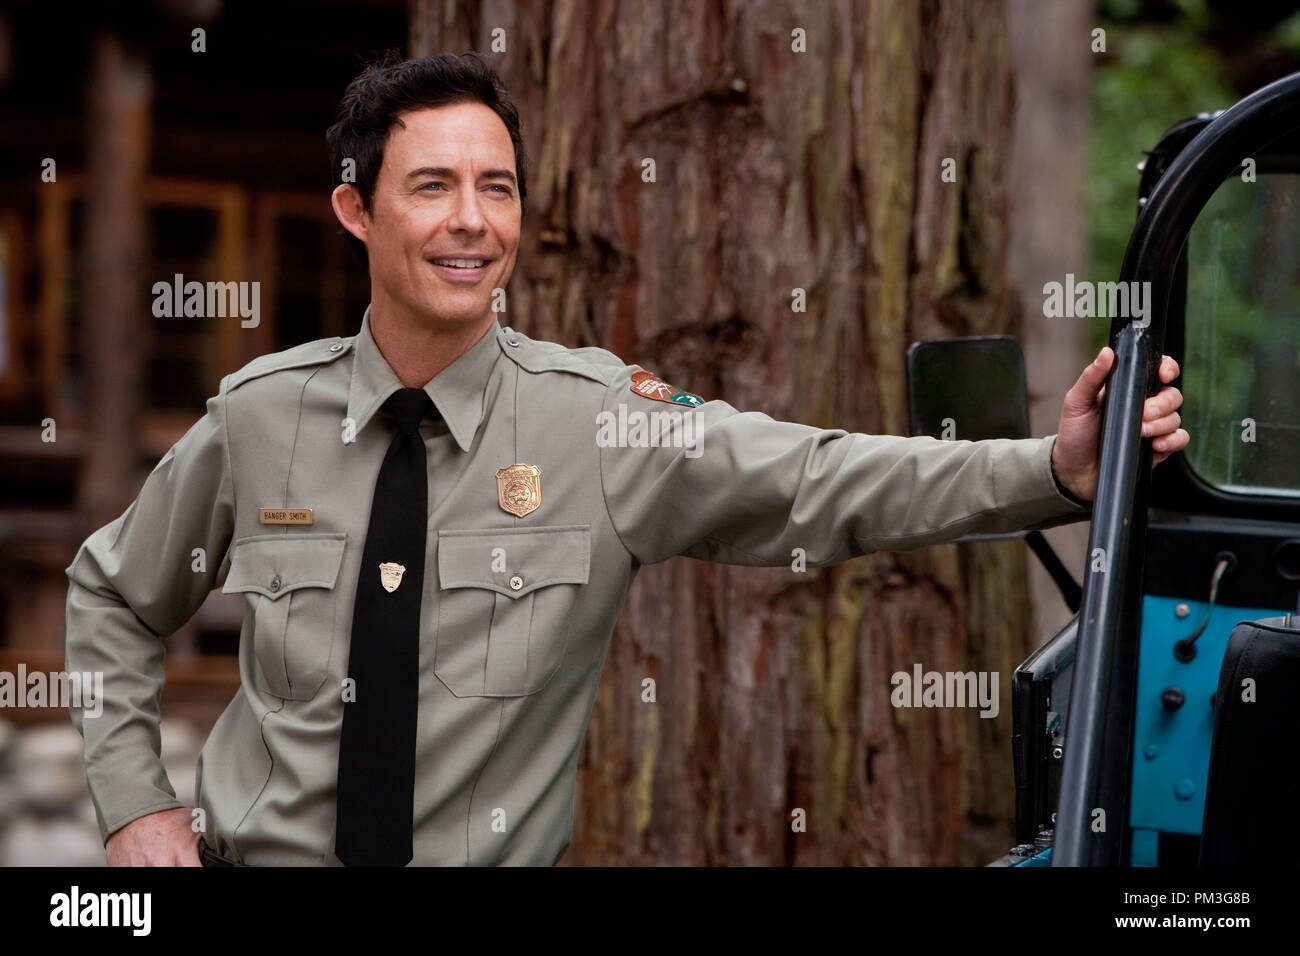 Tom Cavanagh As Ranger Smith In Warner Bros Pictures Live Action Computer Animated Adventure In 3d Yogi Bear A Warner Bros Pictures Release 2010 Stock Photo Alamy